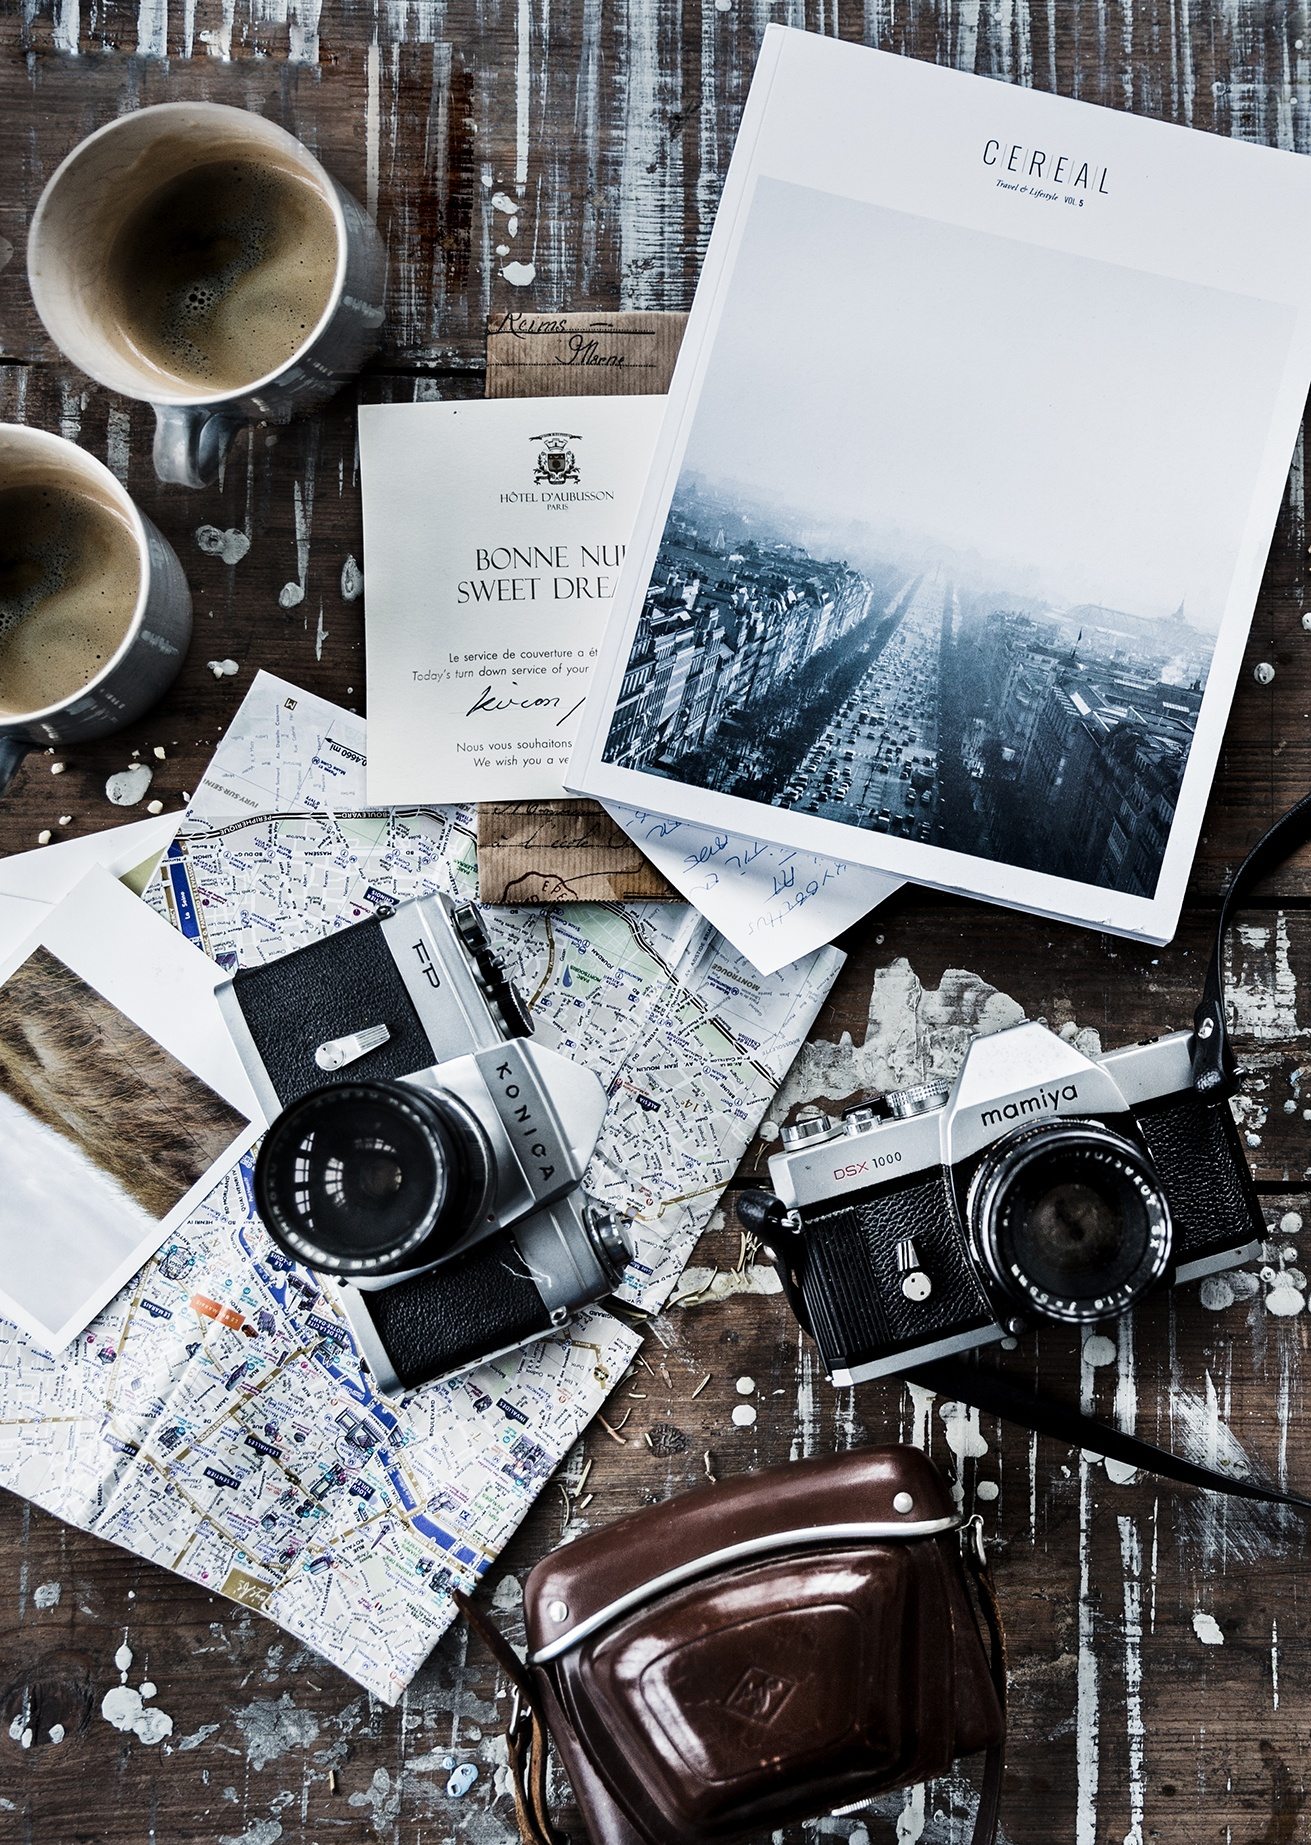 7 Essential Tips For Creating Beautiful FlatLay Photos Like A Pro